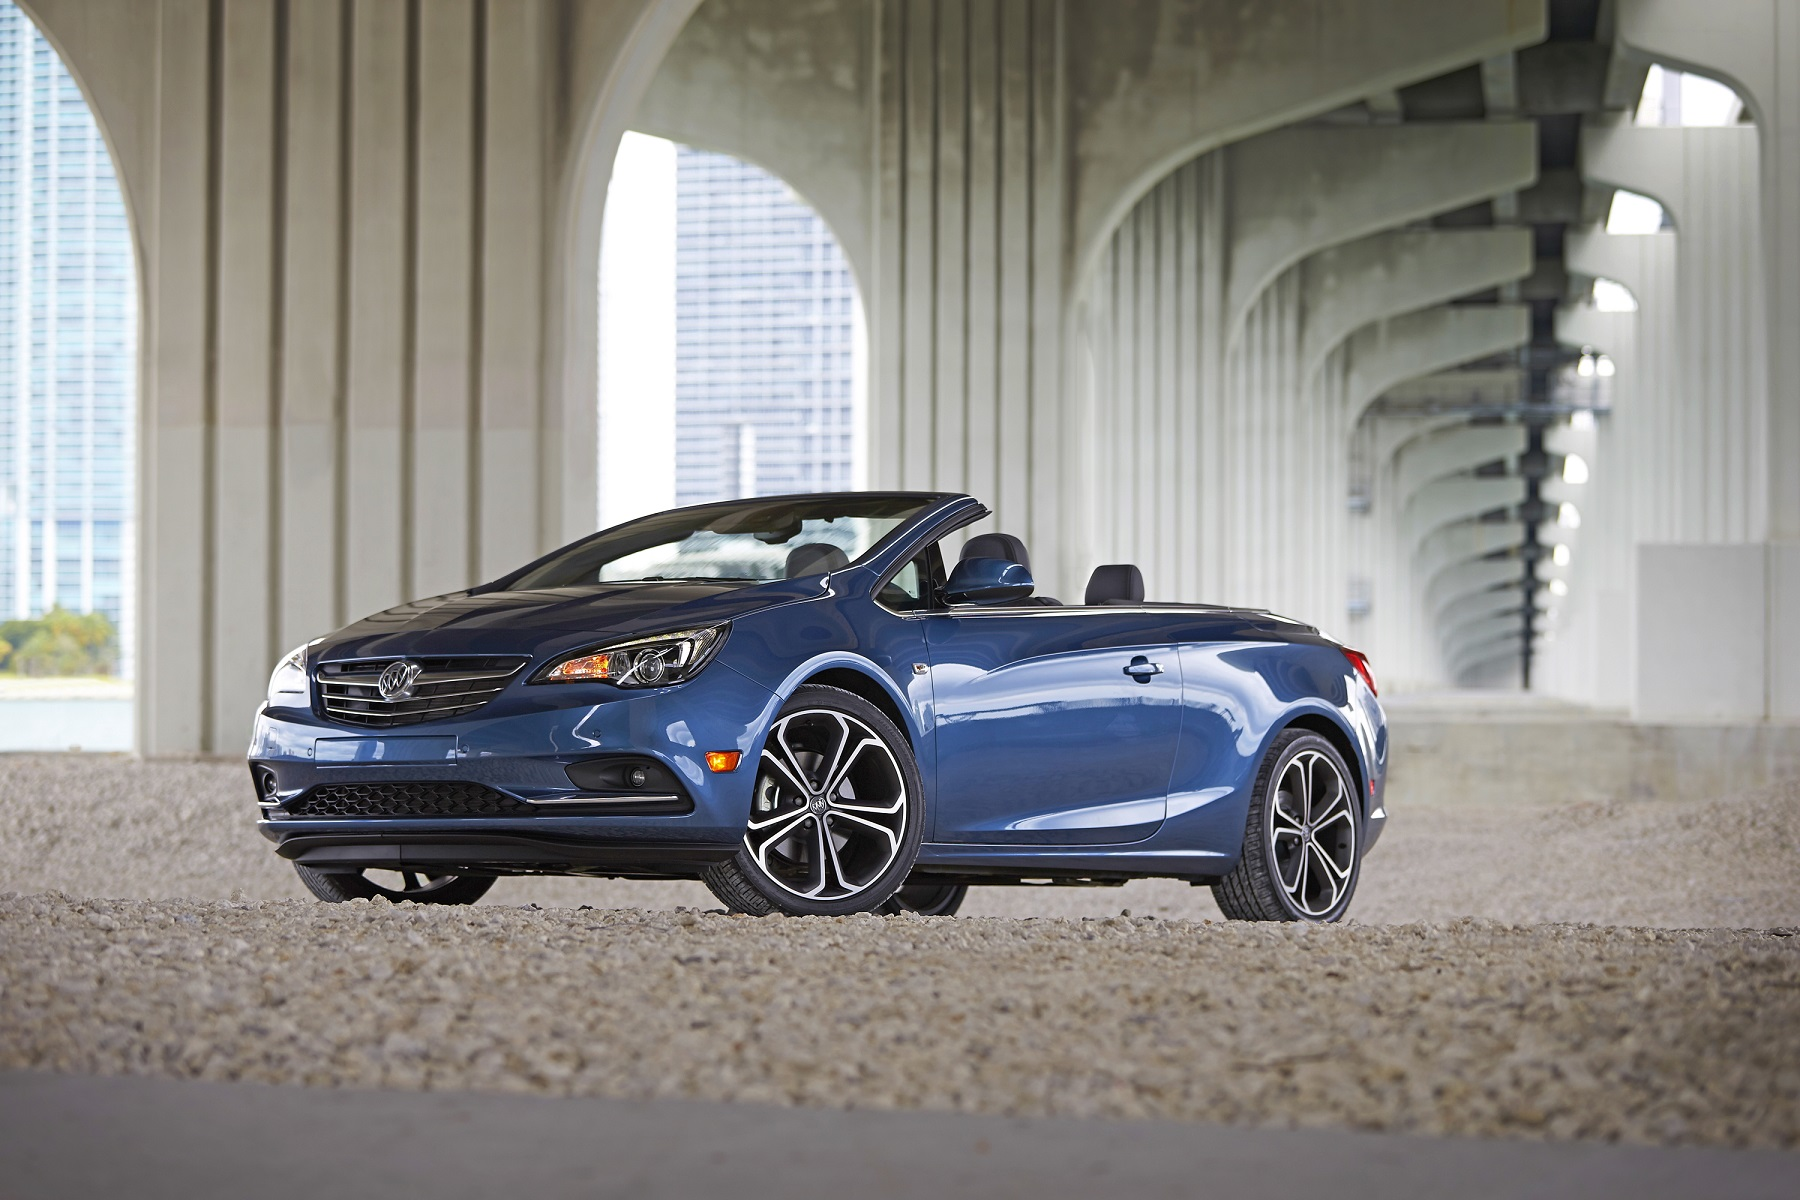 Buick takes bold step to boost market appeal